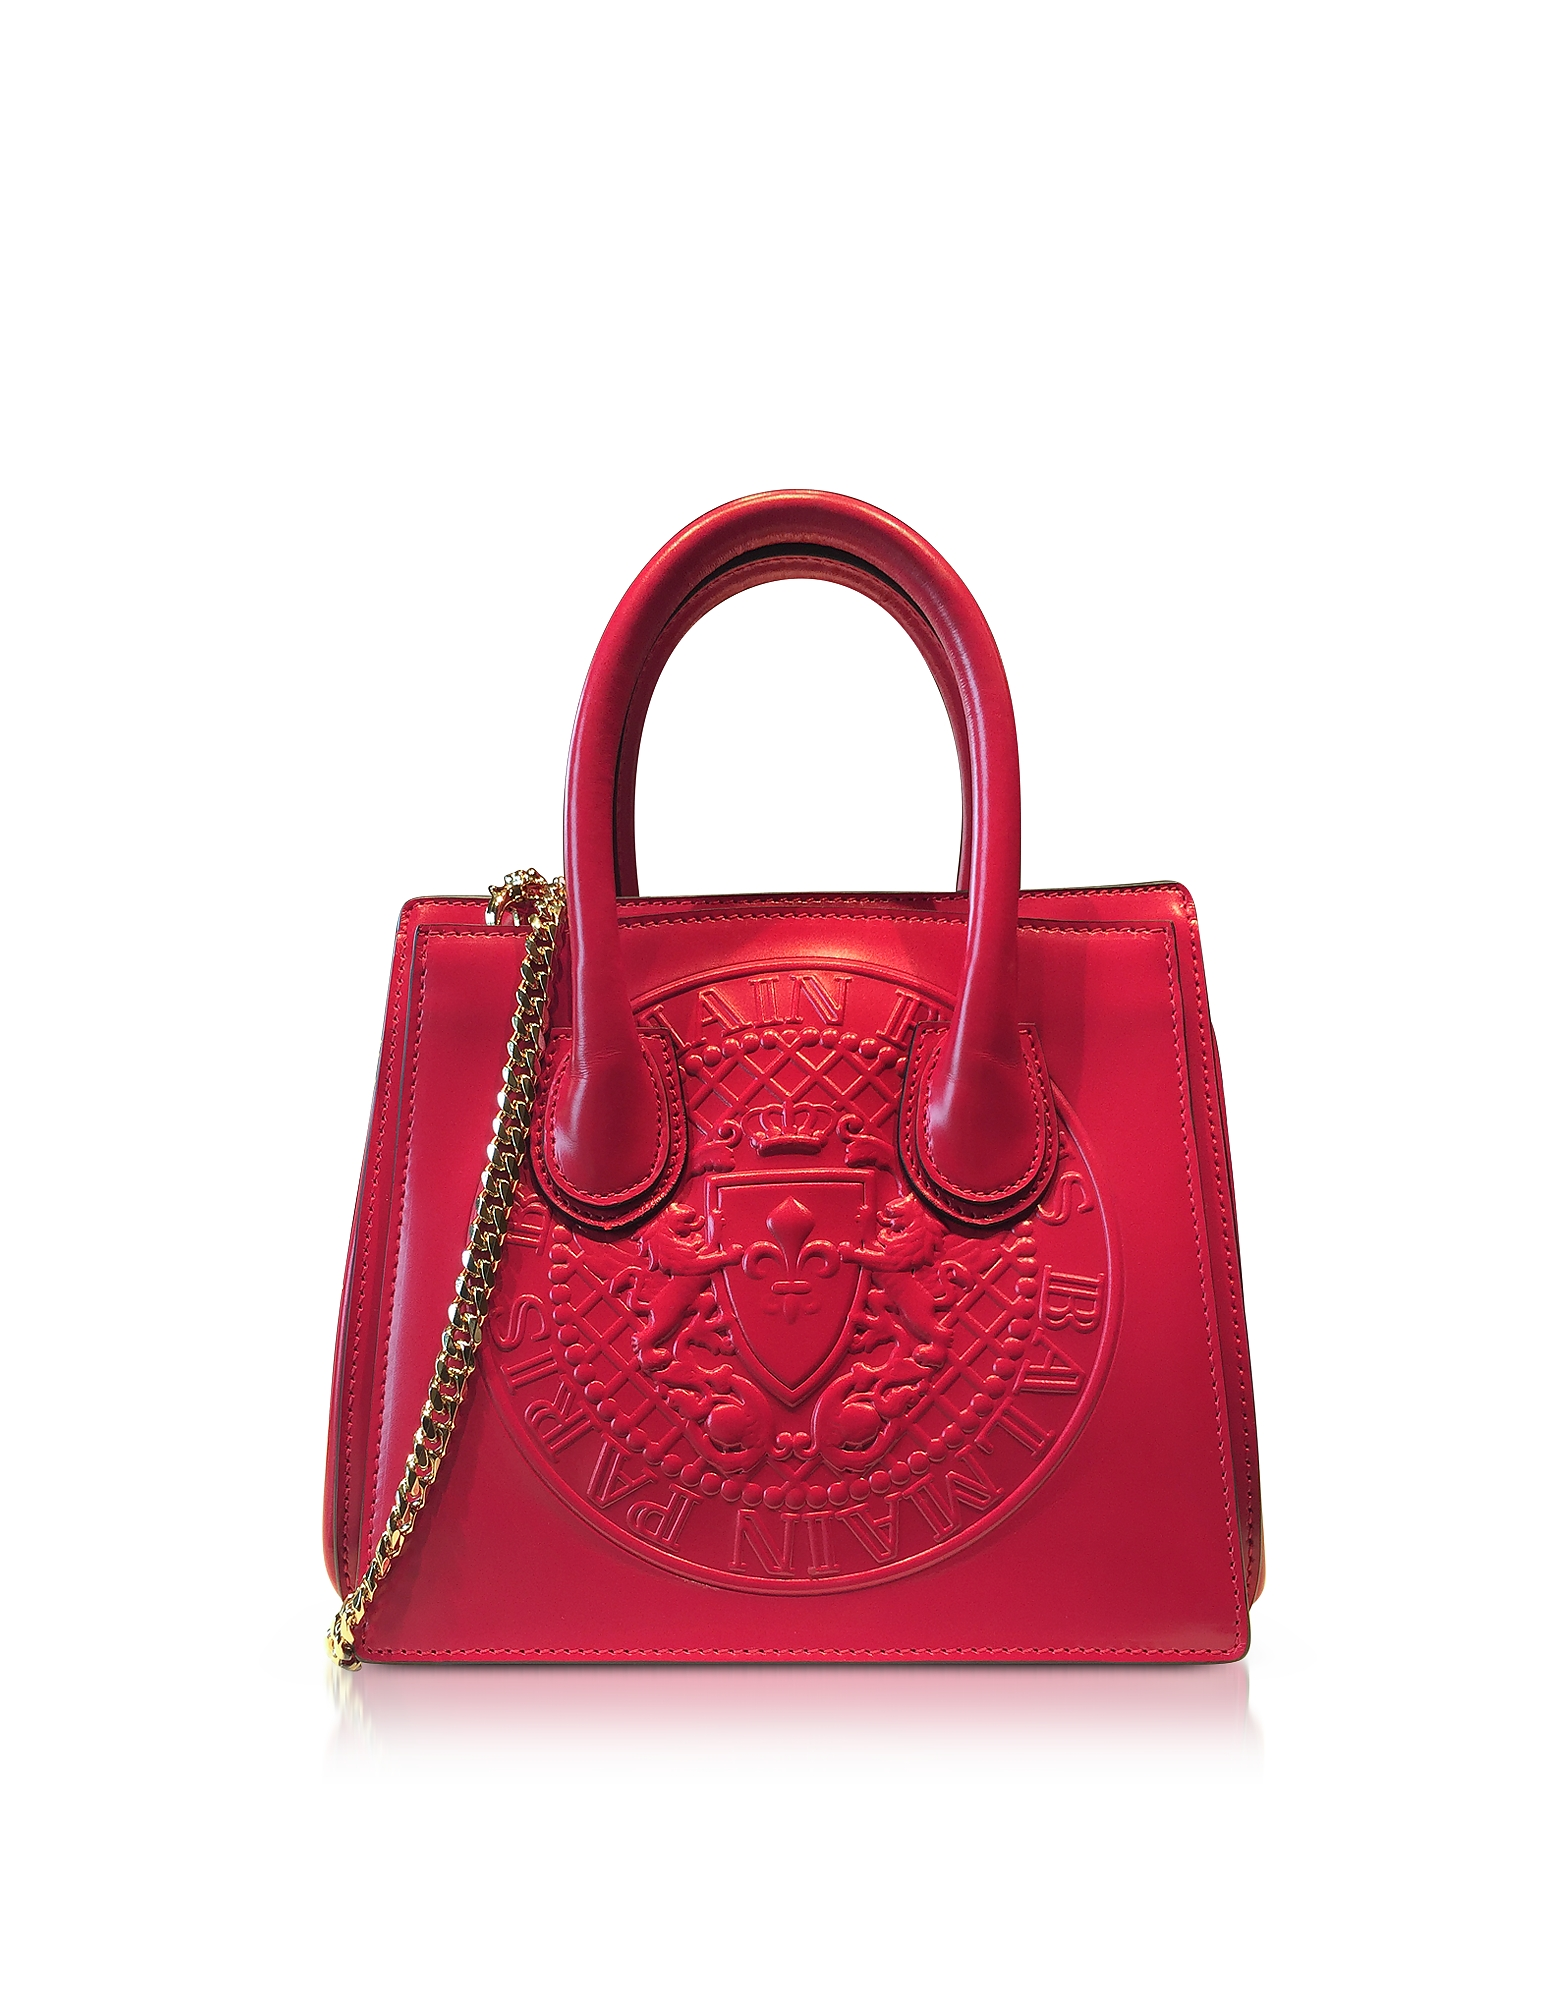 Balmain Handbags, 3D Red Glossy Leather Mini Top Handle Bag w/Embossed Blazon